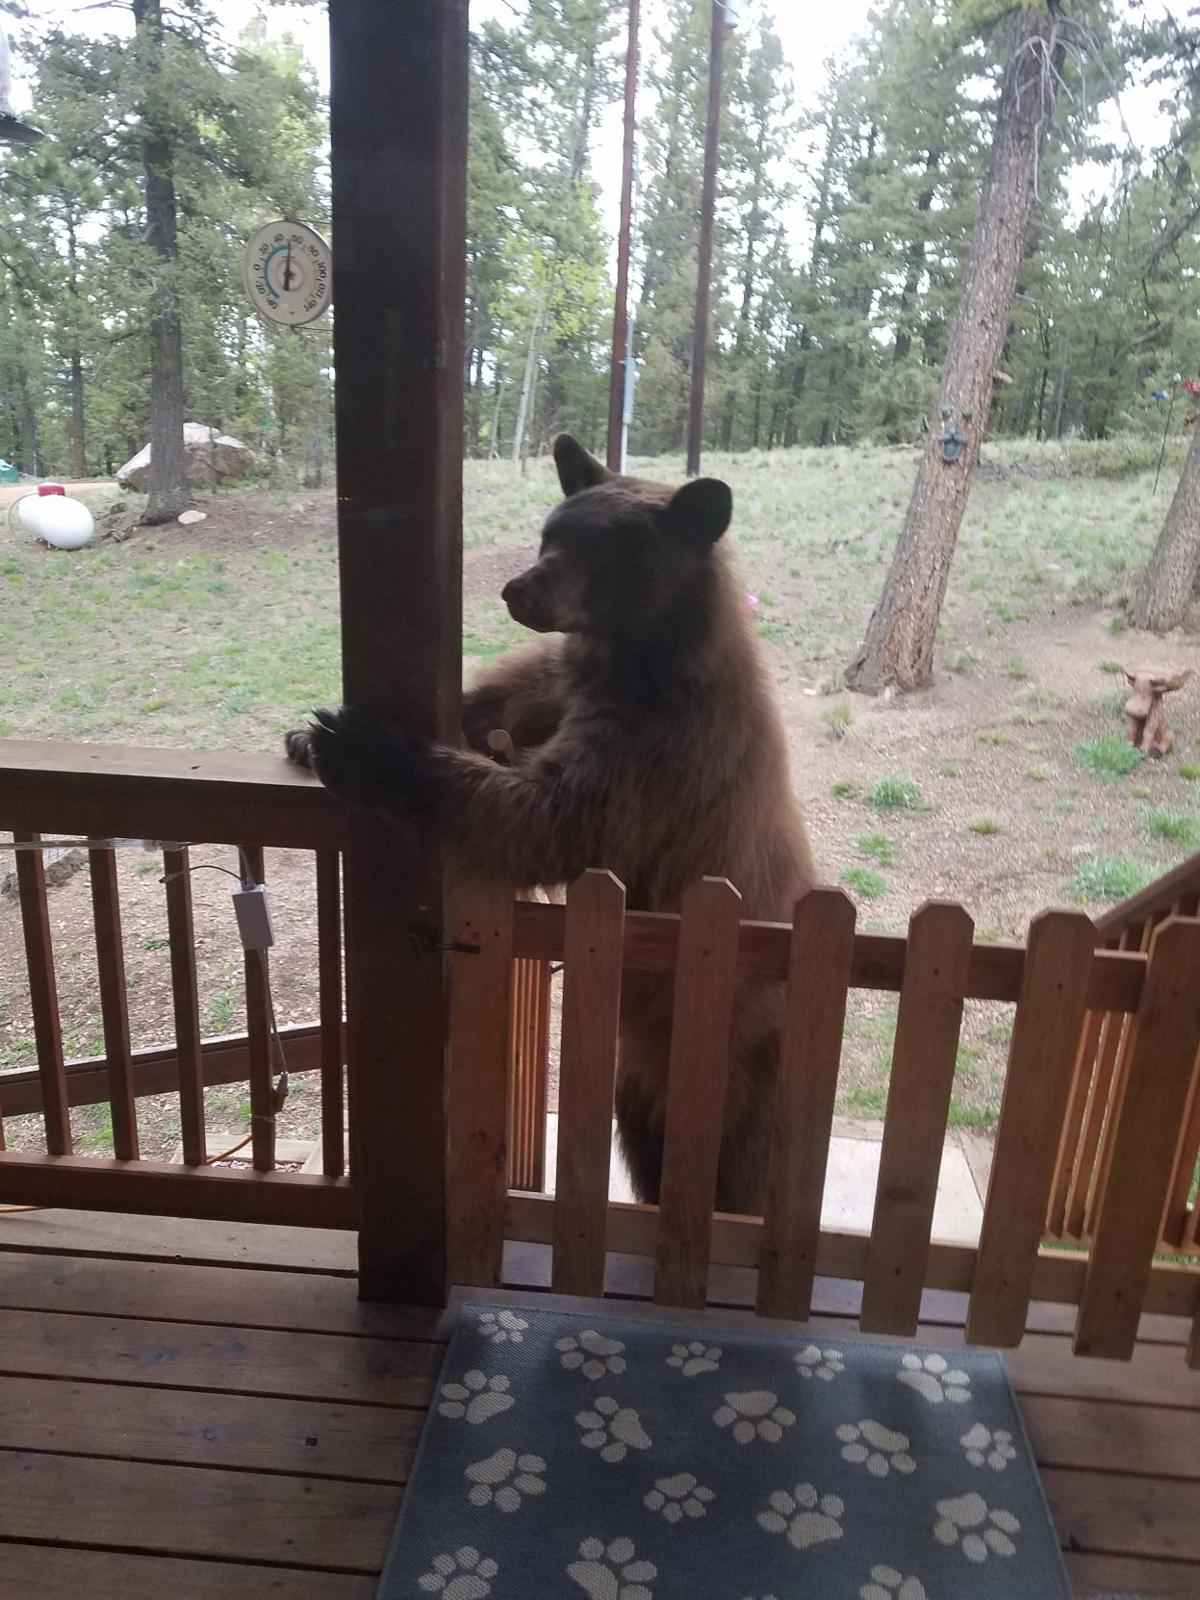 Curious bears snack on sweet nectar